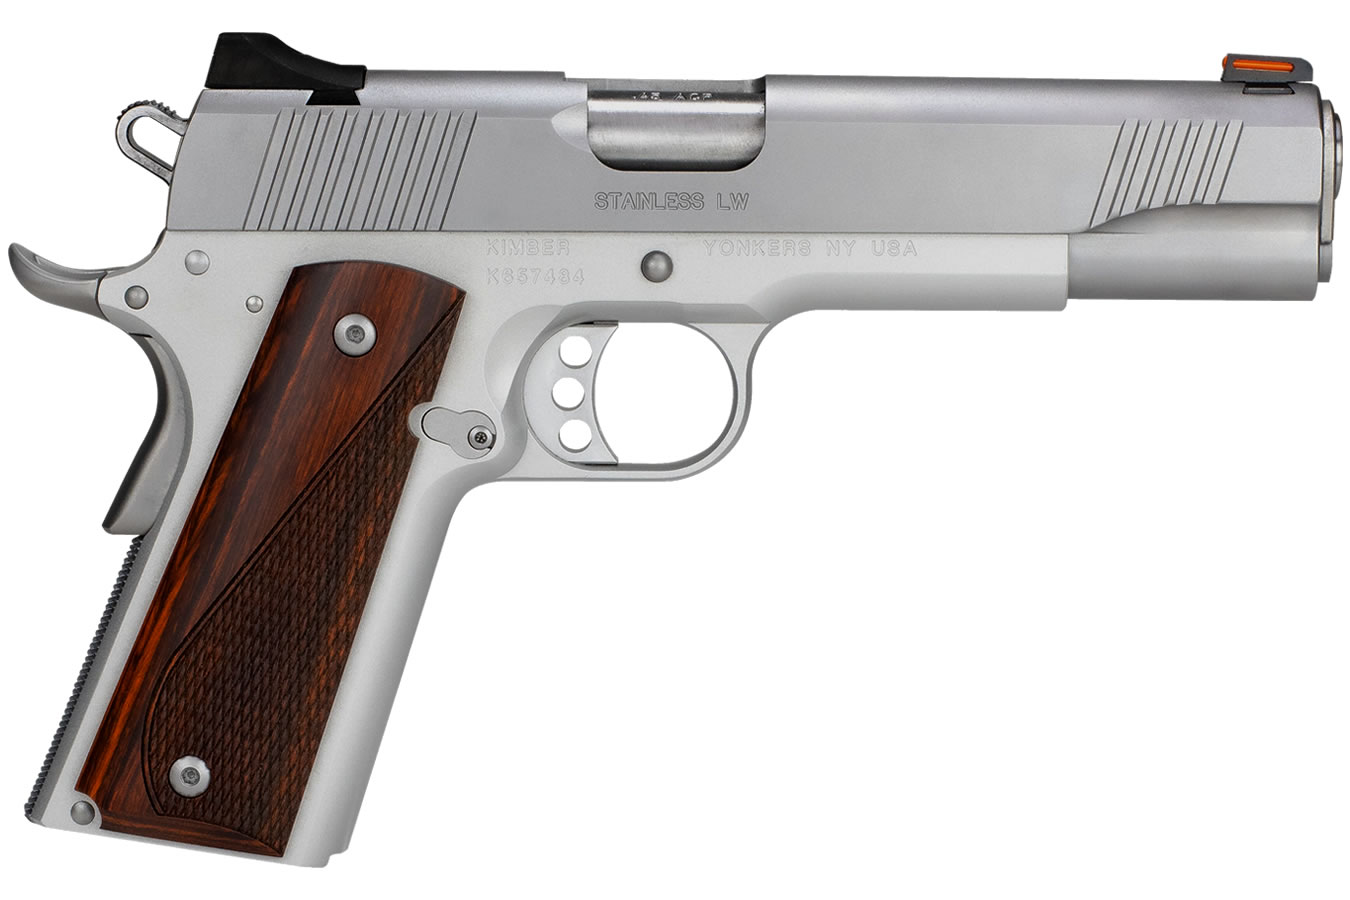 Kimber Stainless Lw 45 Acp Pistol With Stainless Small Parts And Cocobolo Laminate Grips Sportsman S Outdoor Superstore